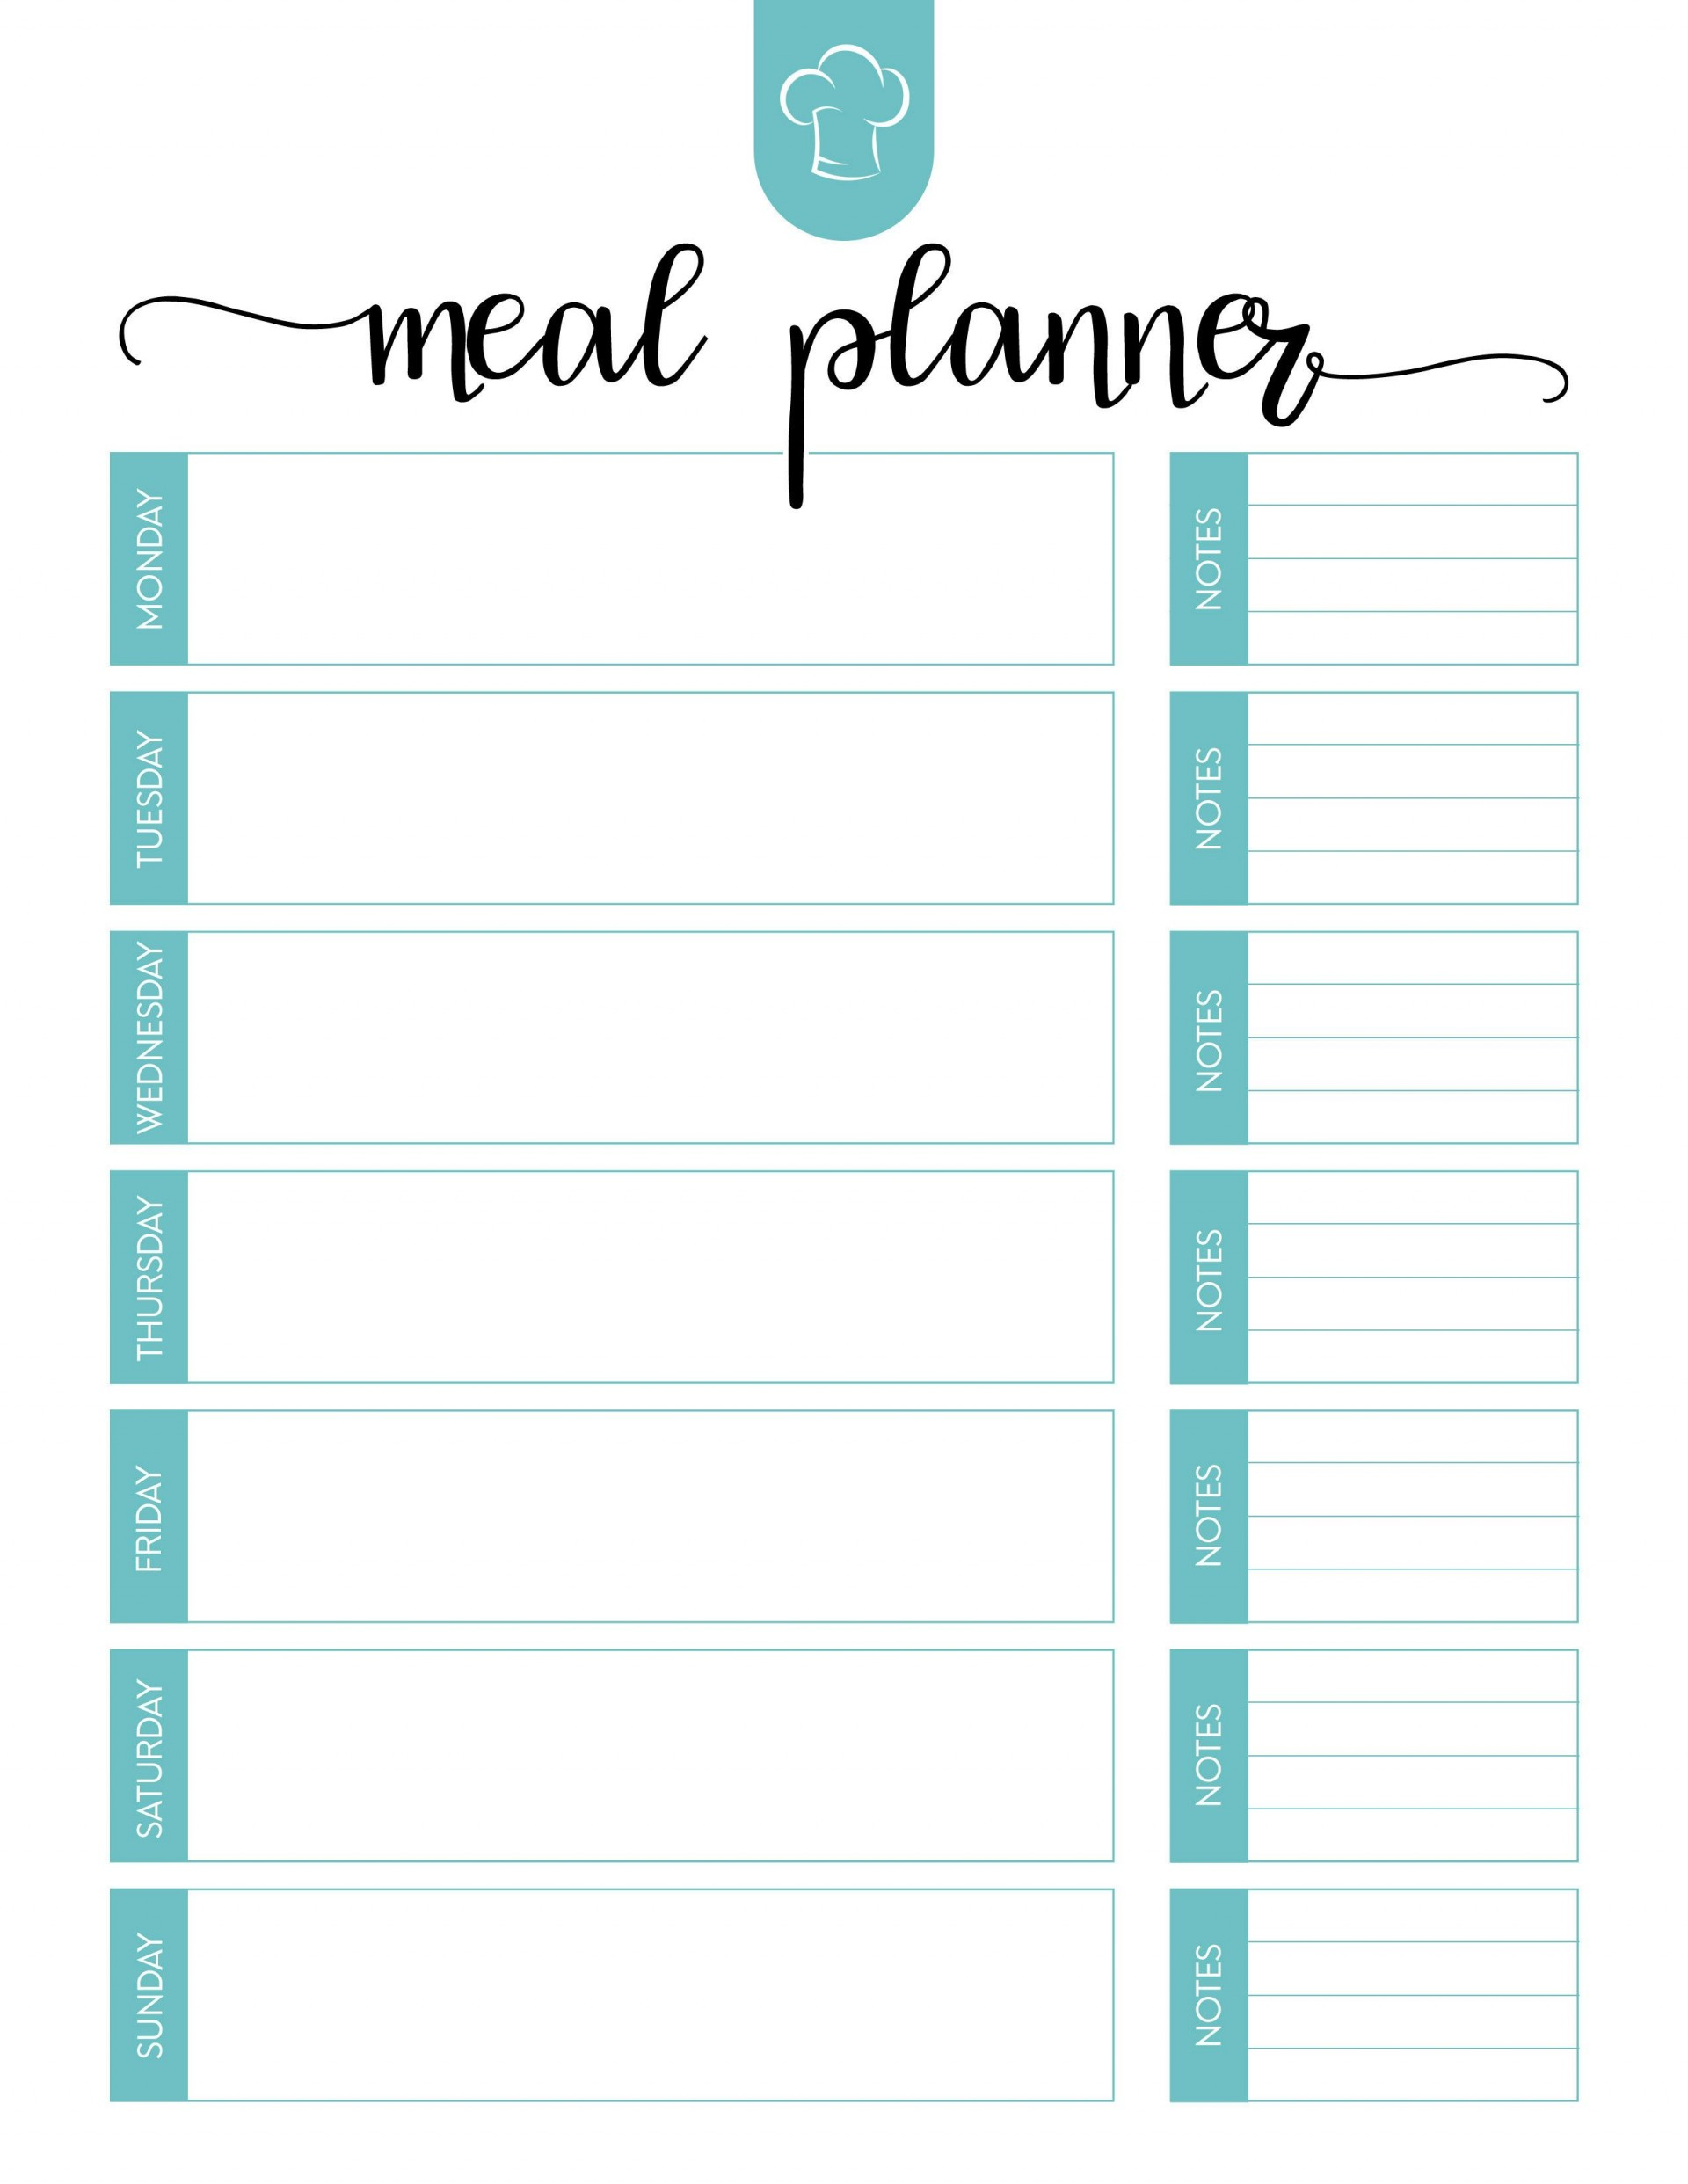 Weekly Free Meal Plan Template With Note  Worksheet Planner For Weight Los Excel1920